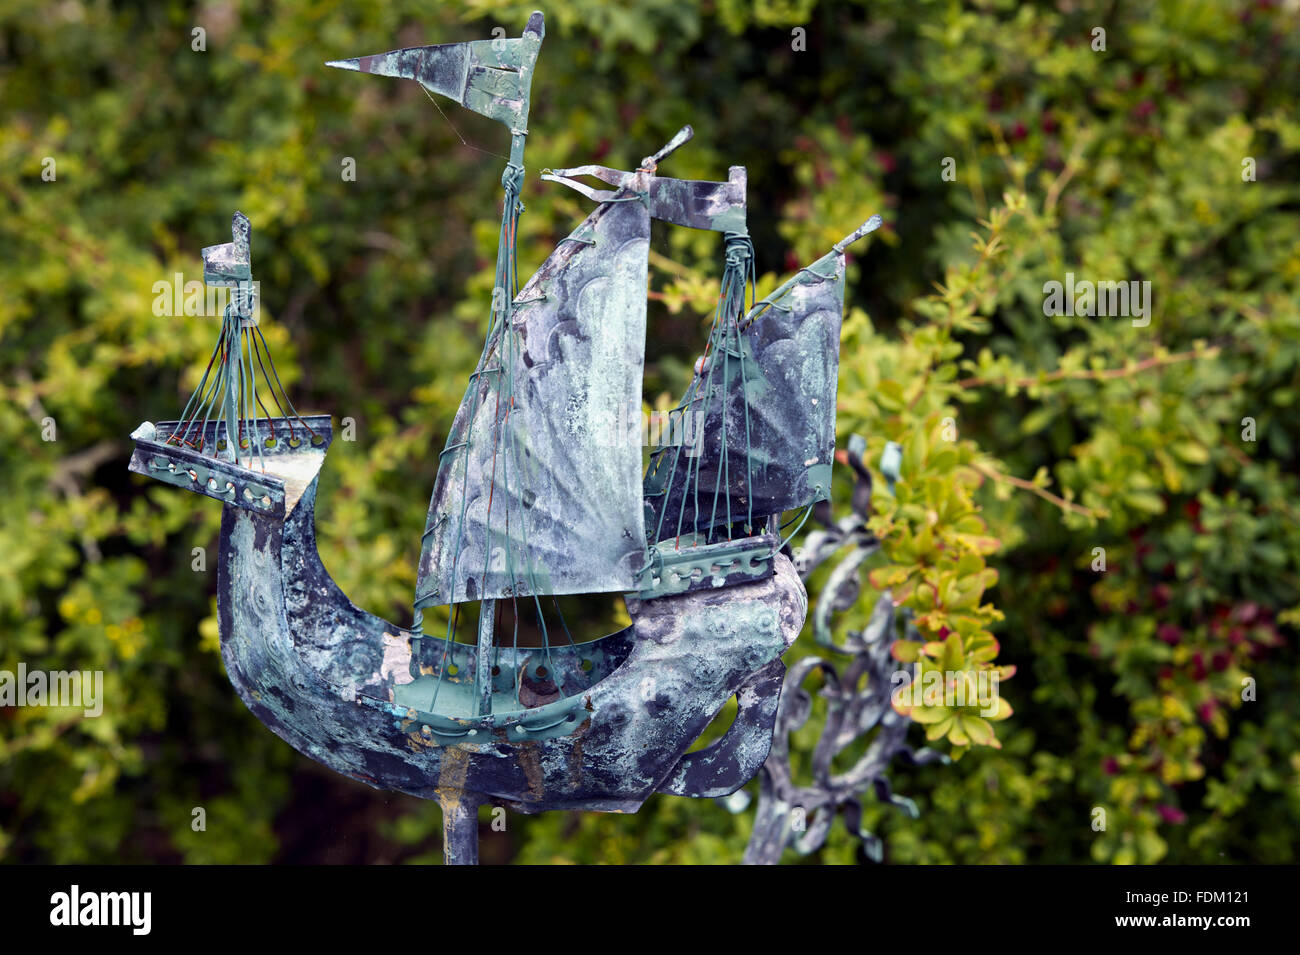 Metalwork sculpture of a ship at Tintinhull Garden, Somerset. - Stock Image